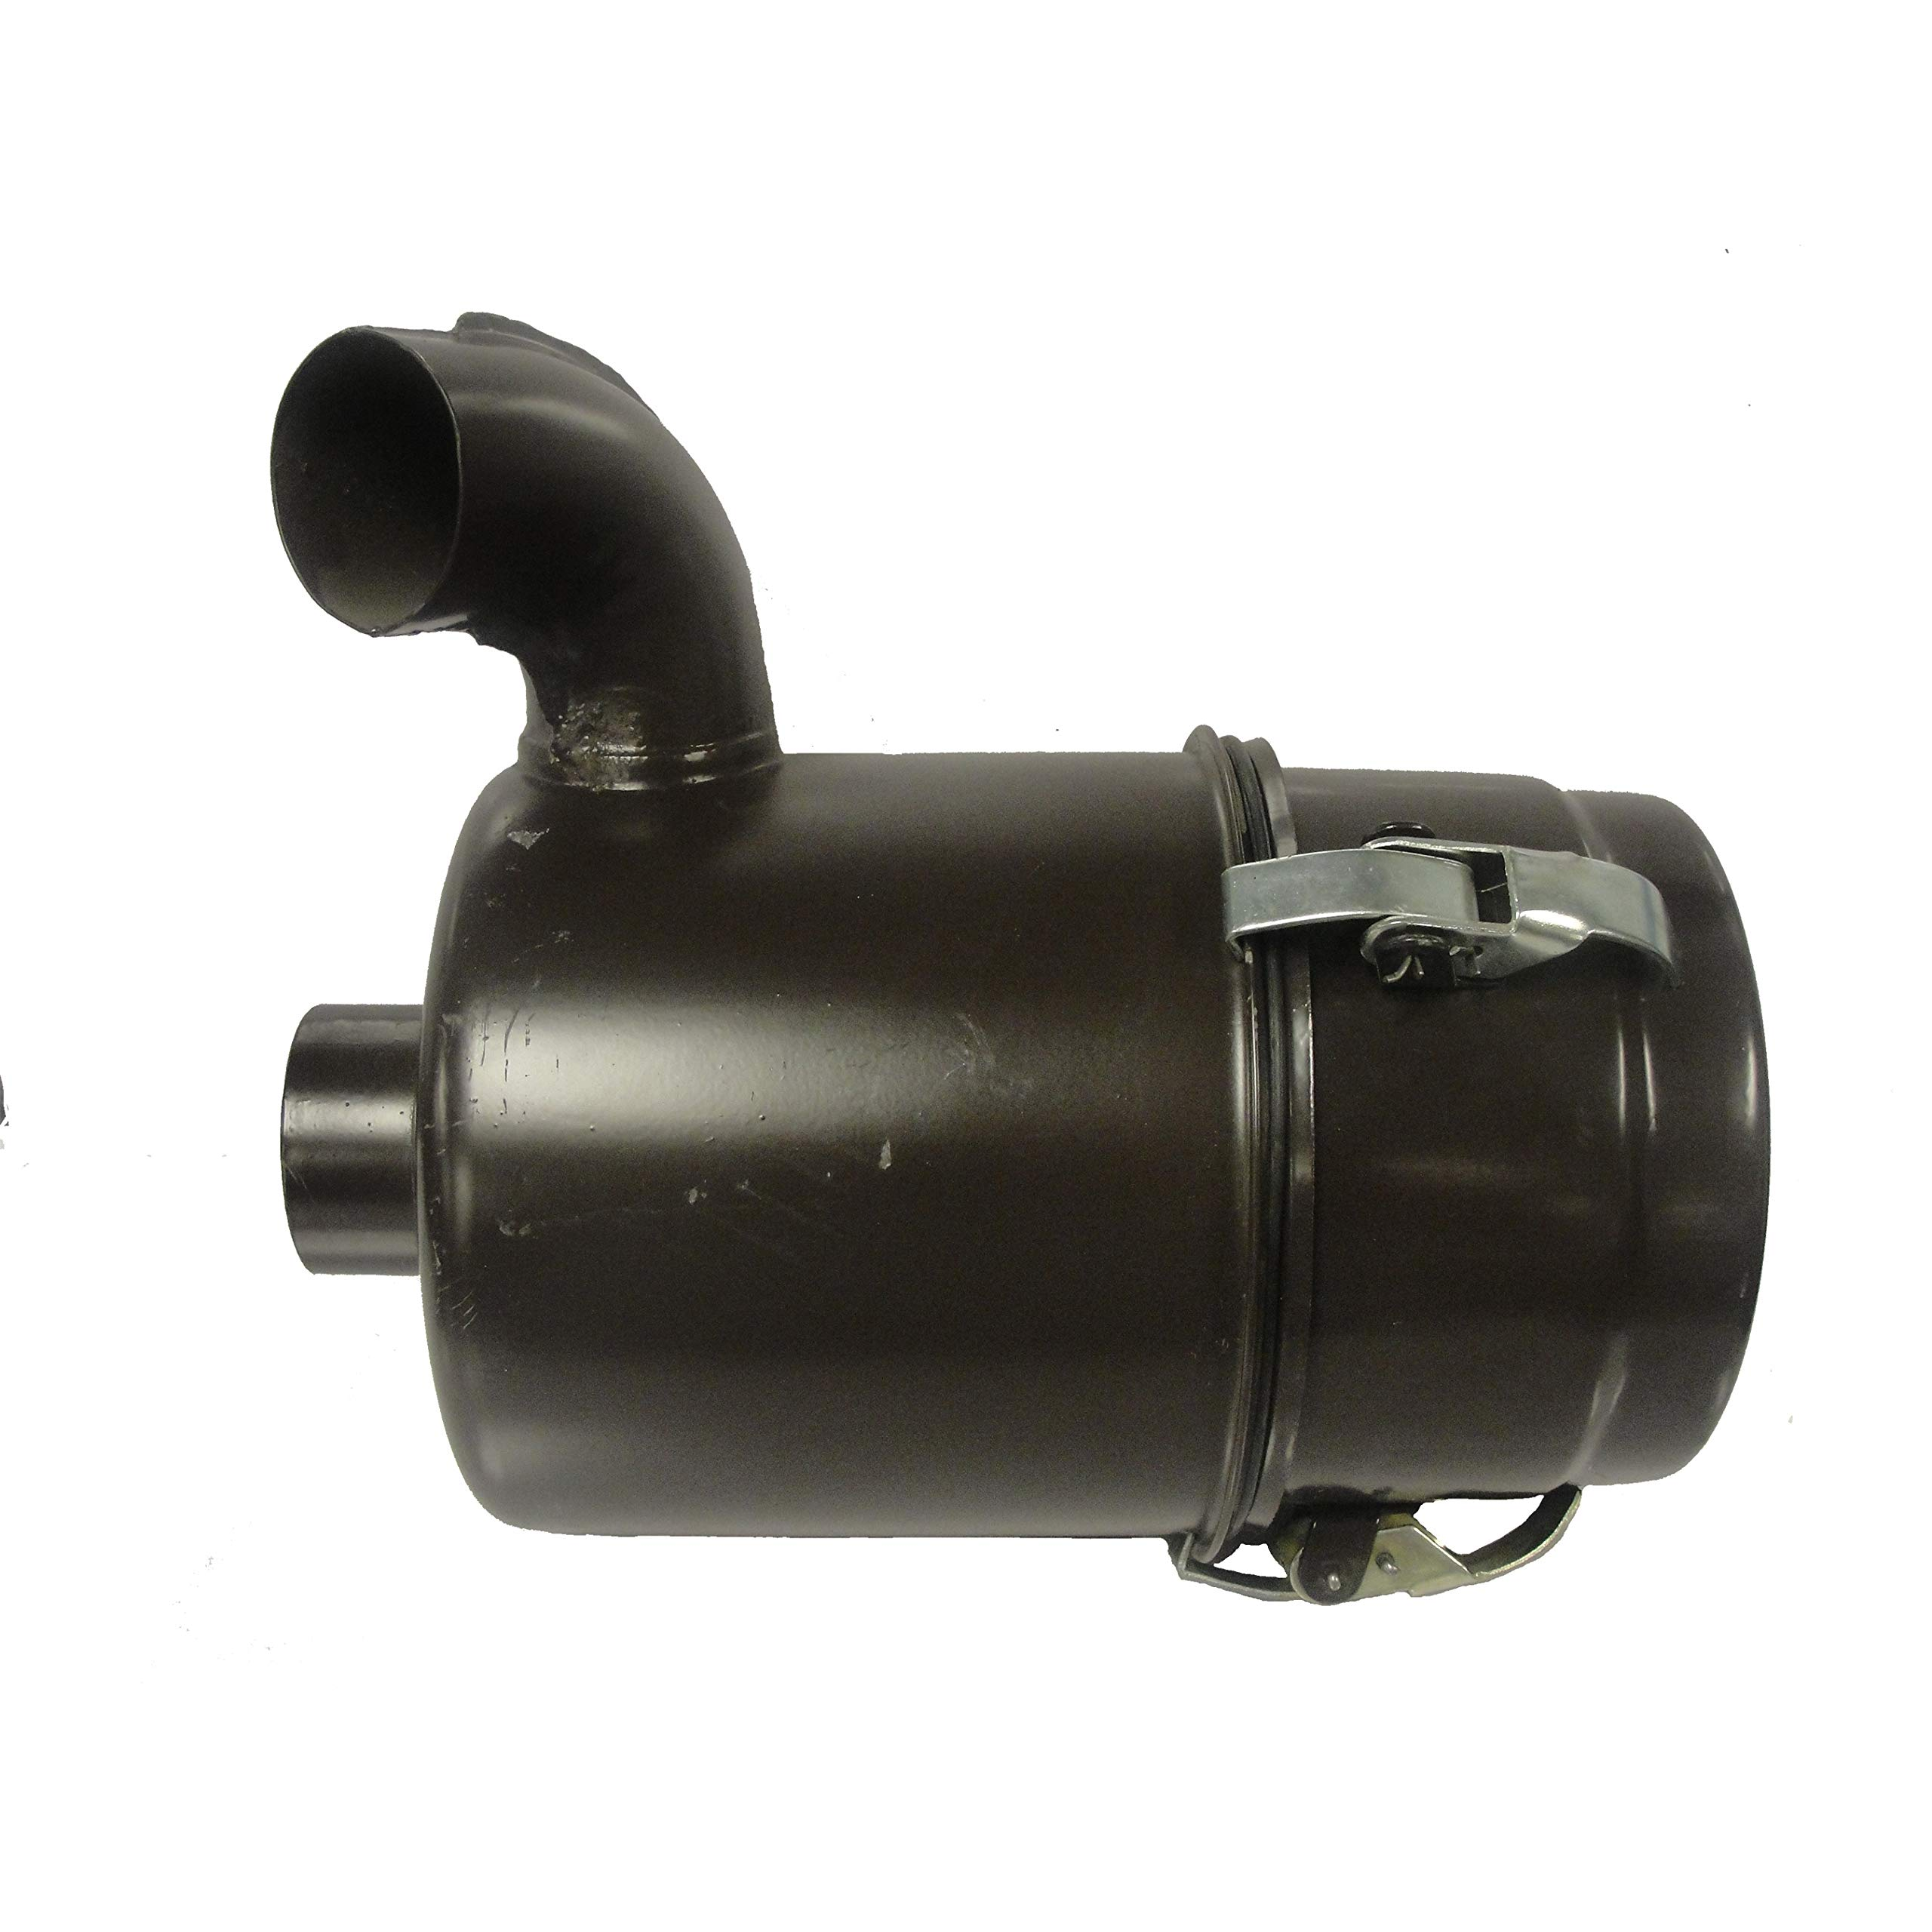 Complete Tractor 1209-9205 Air Cleaner For Massey Ferguson Tractor 50 165 Others-898390M91